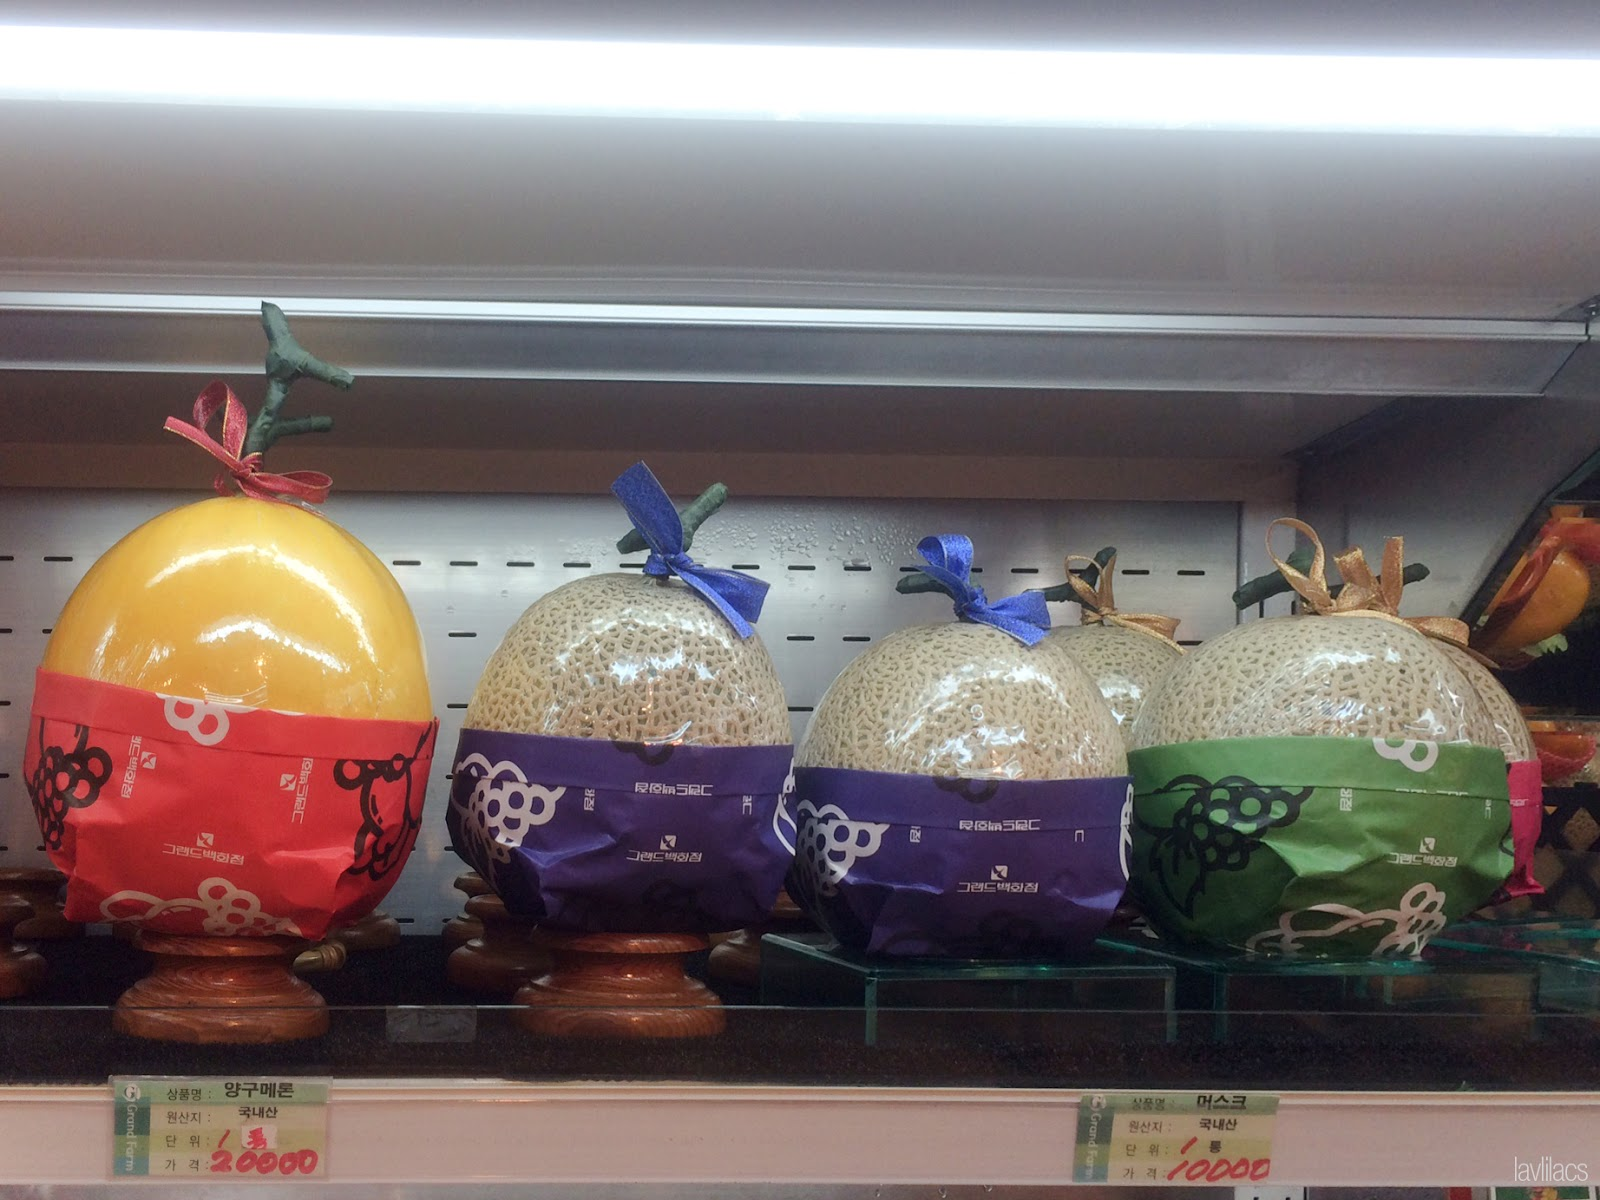 Seoul, Korea - Summer Study Abroad 2014 - Packaged melons in Korean supermarket